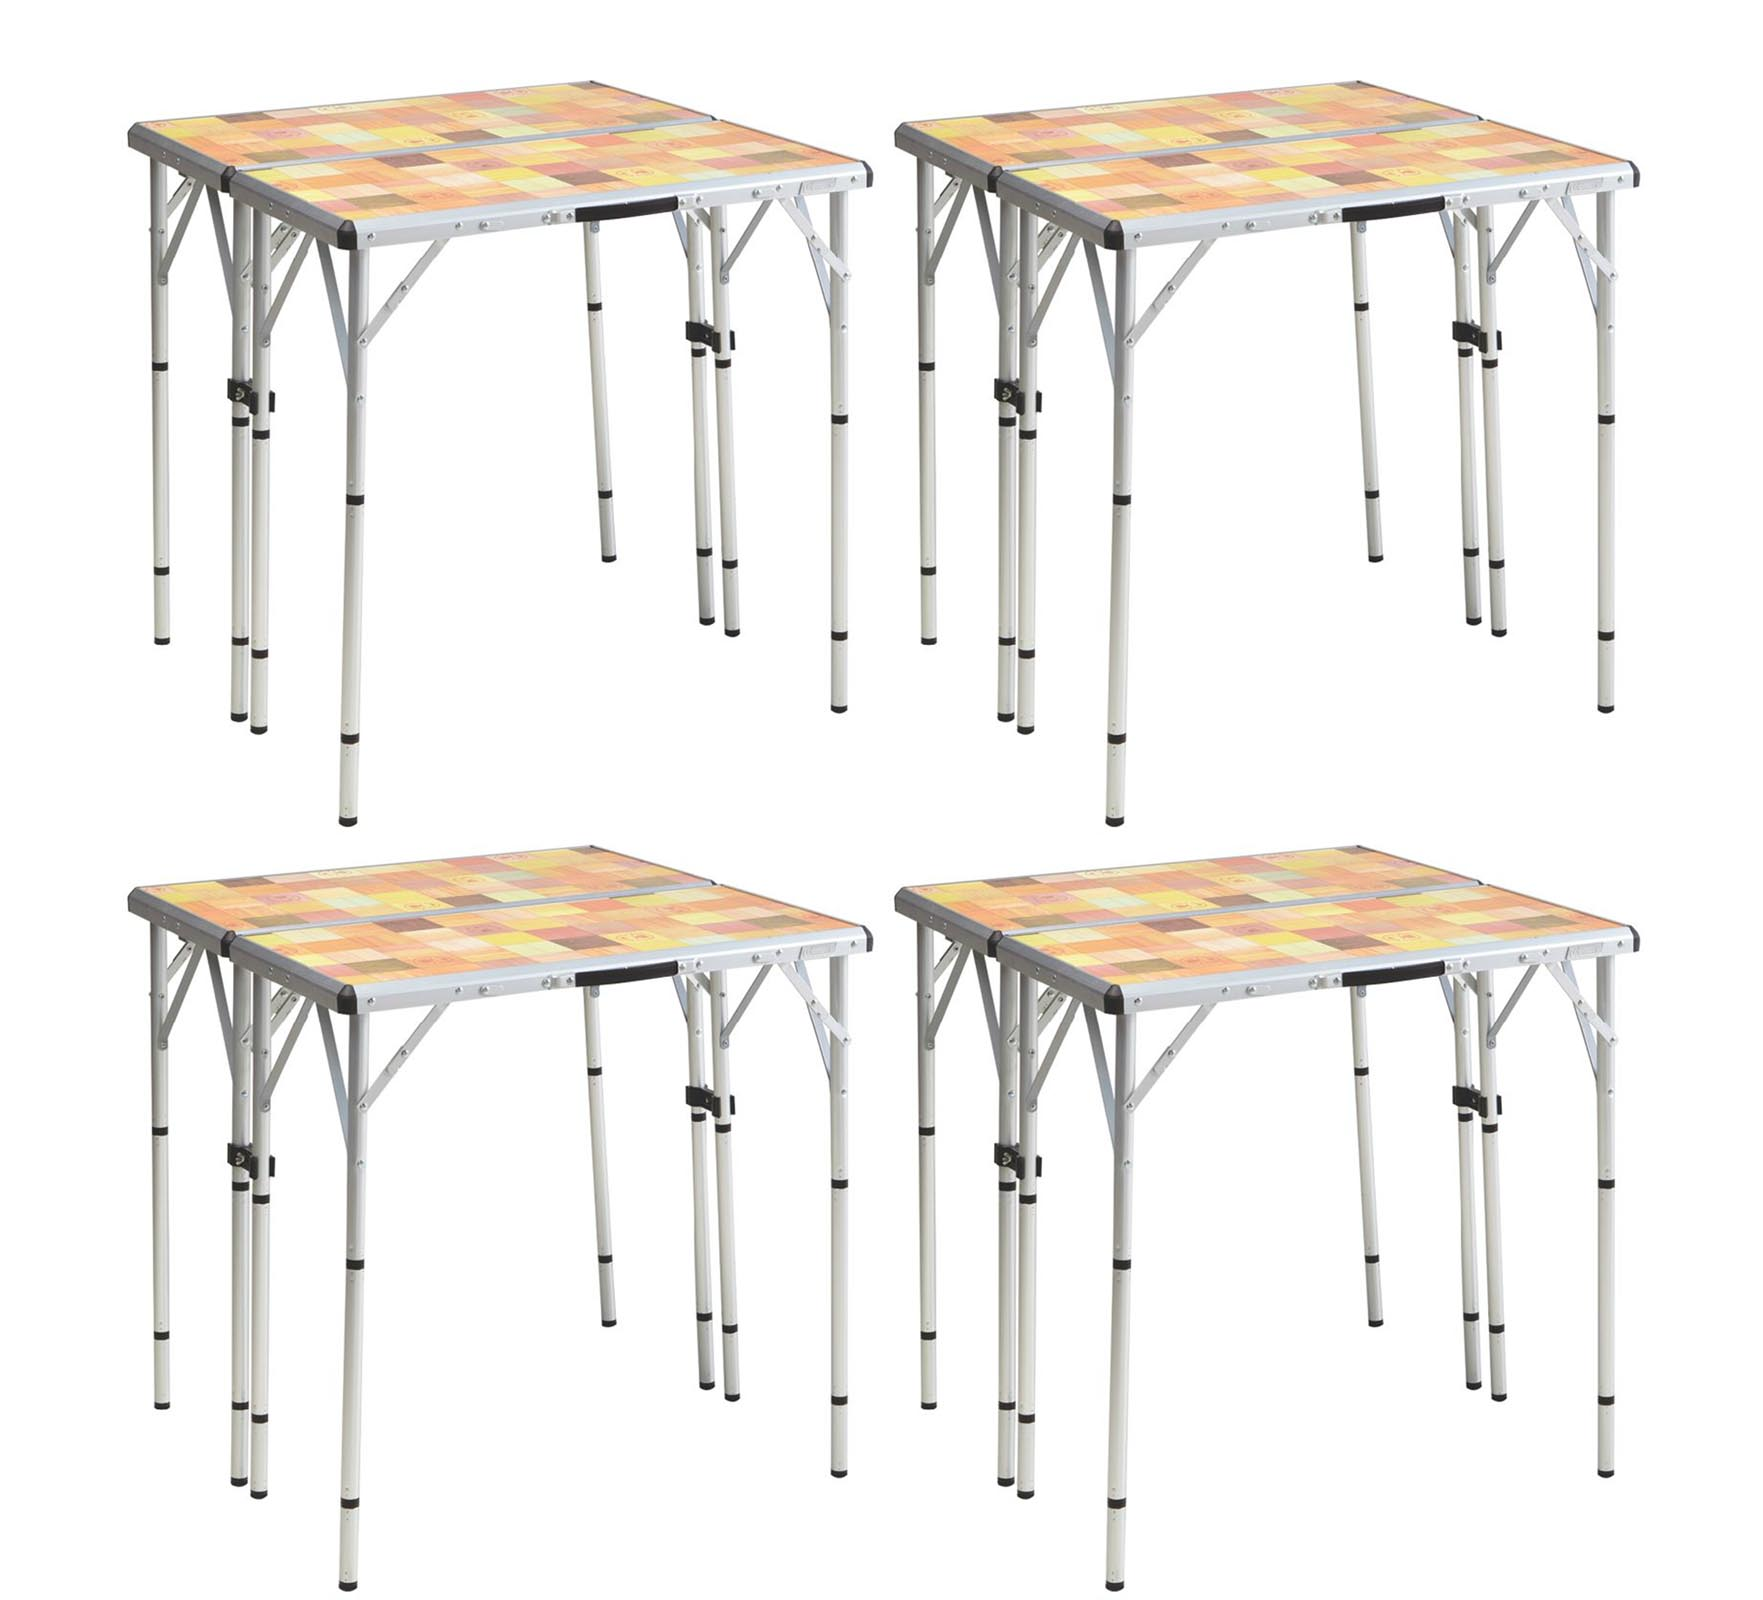 (4) COLEMAN Pack-Away 4-in-1 Portable Mosaic Camping Tailgating Picnic Tables by